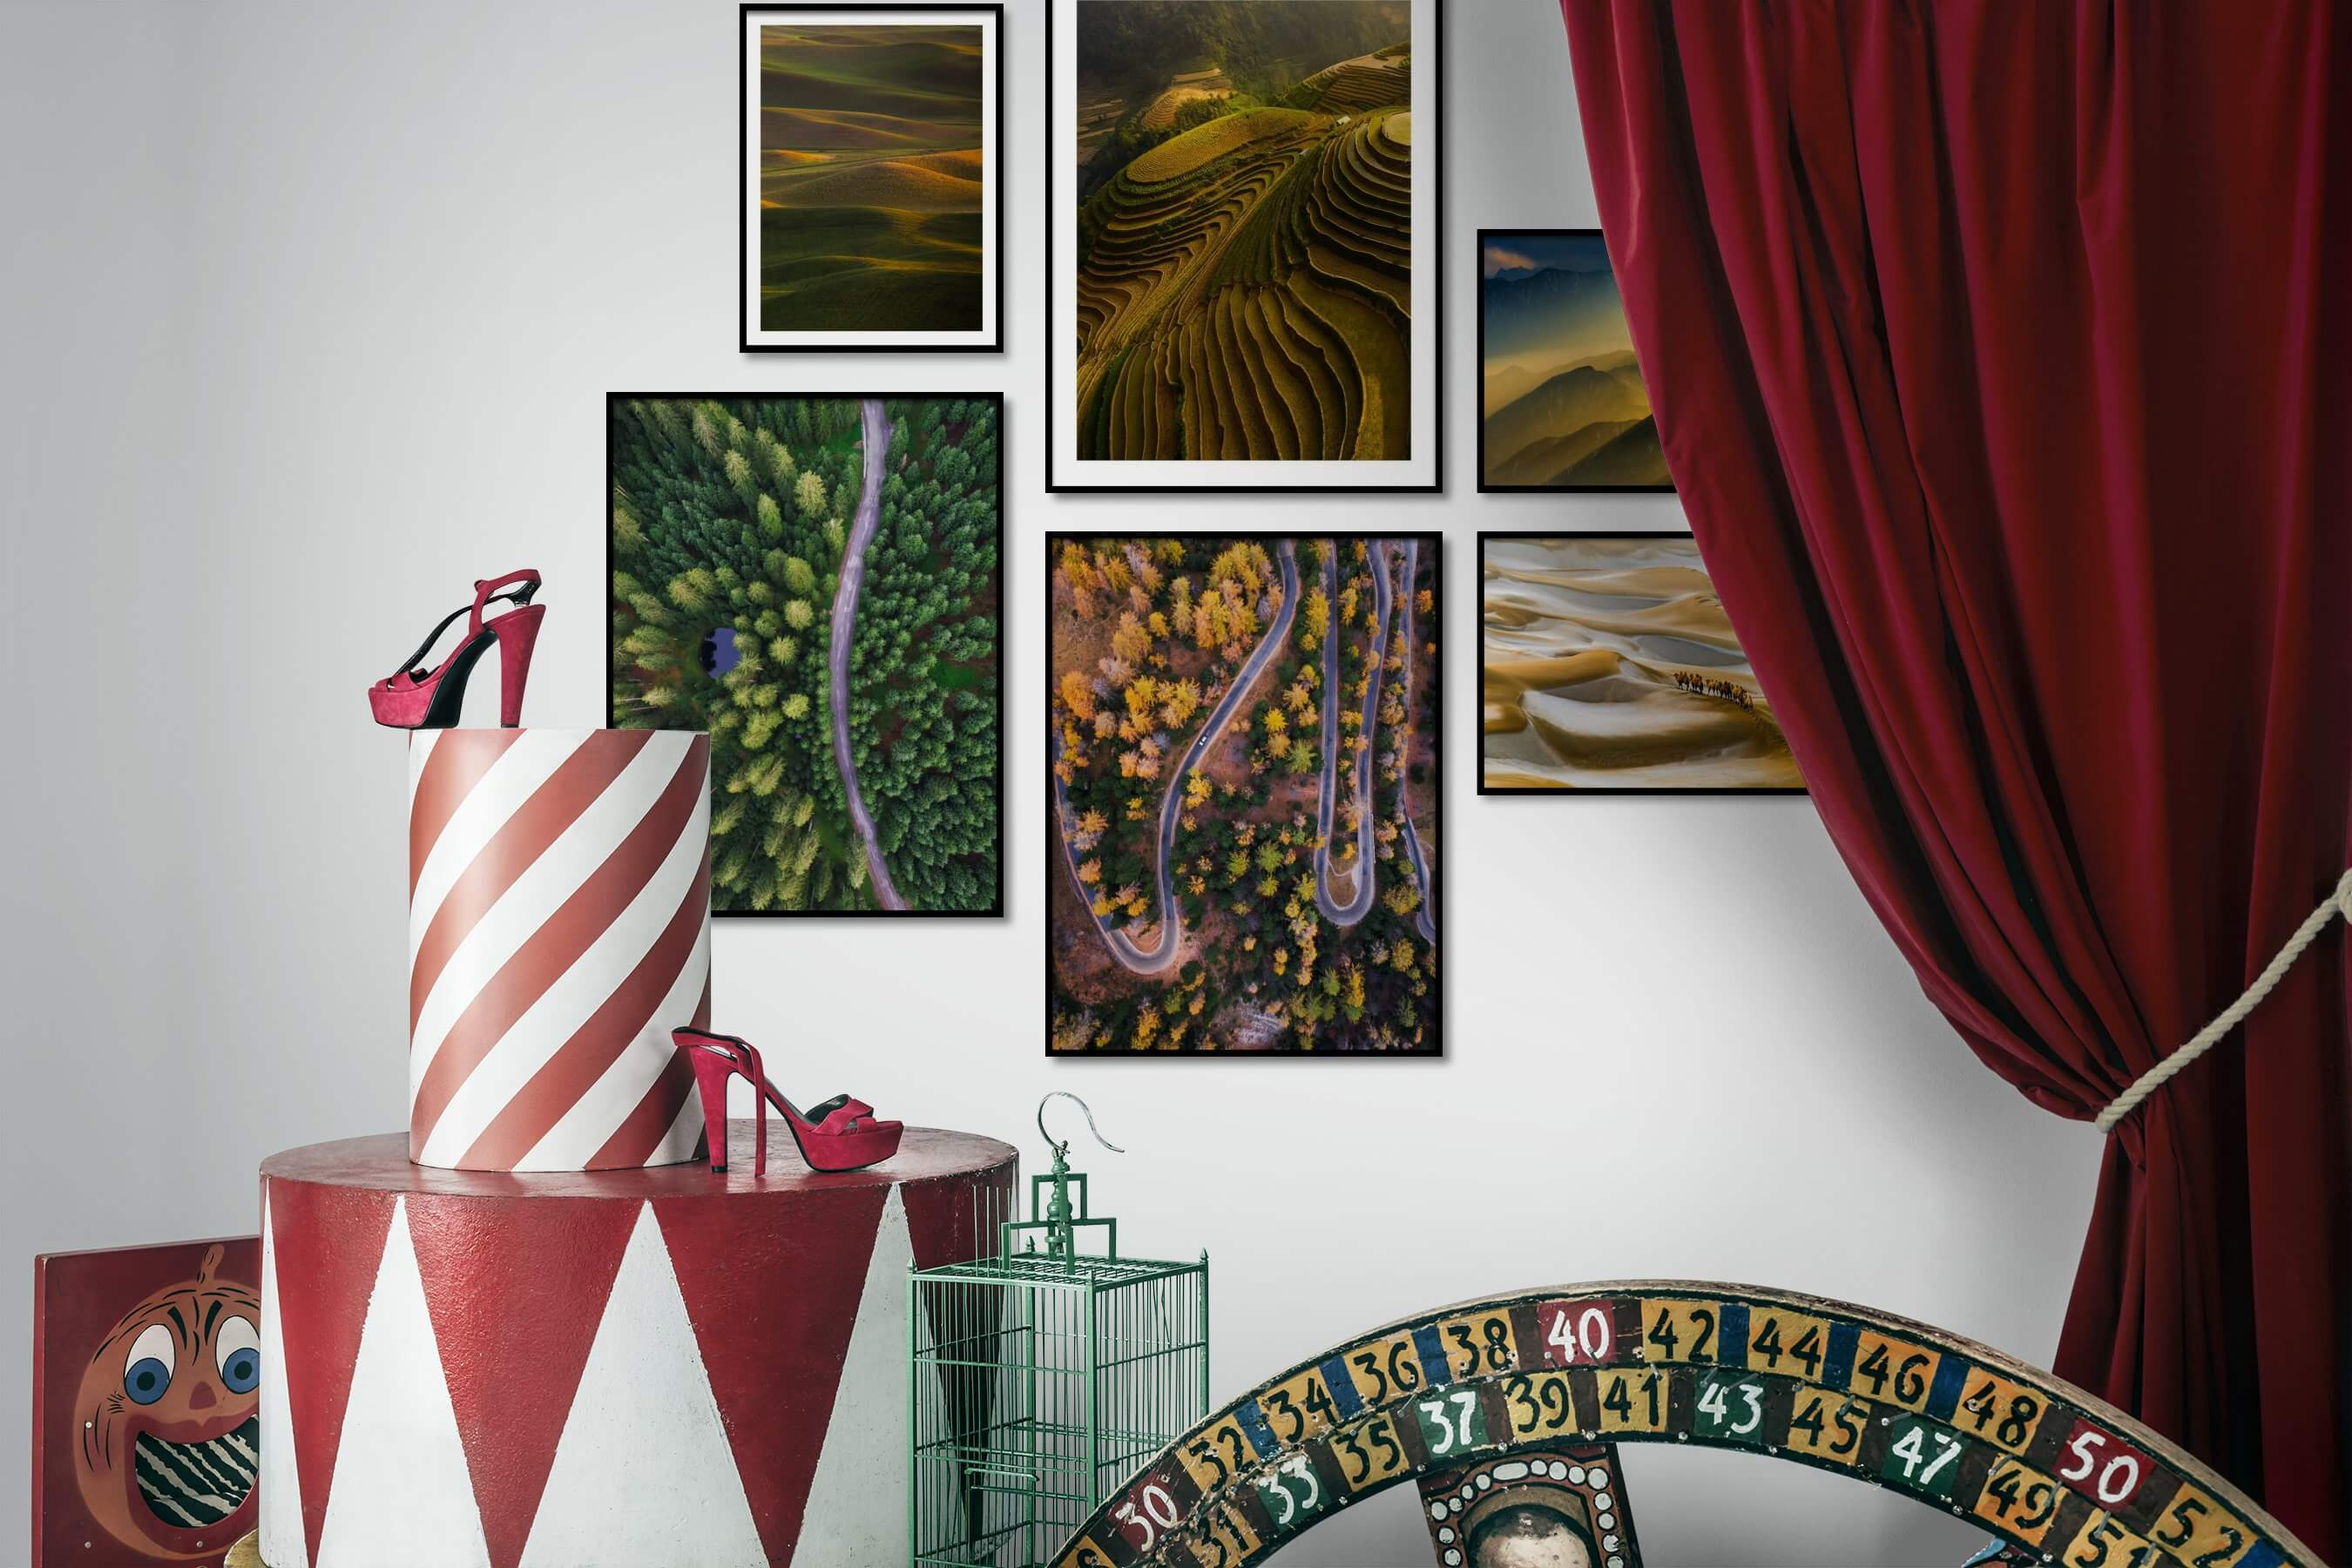 Gallery wall idea with six framed pictures arranged on a wall depicting For the Moderate, Country Life, Nature, and Animals